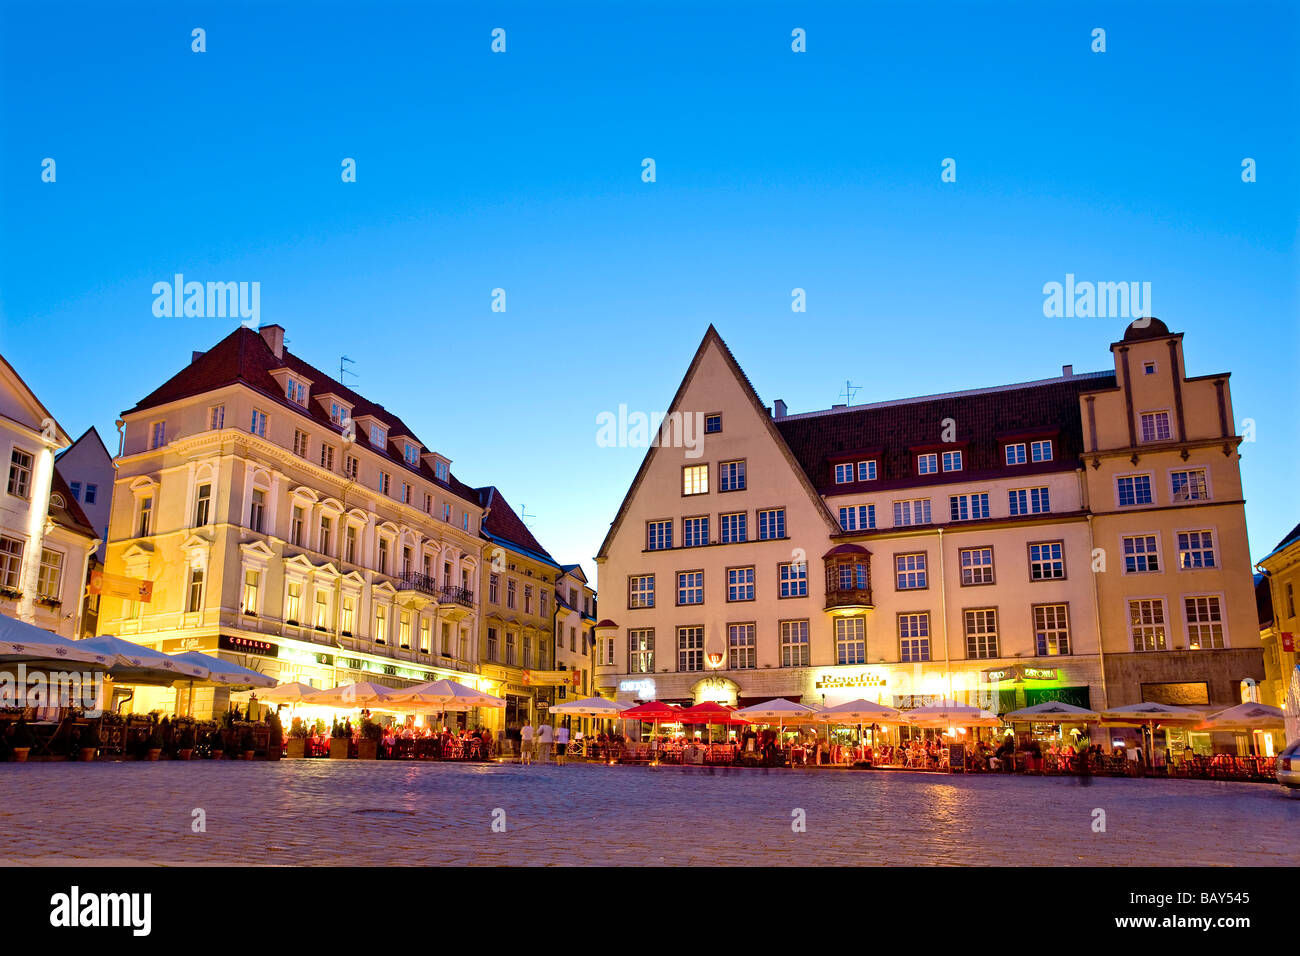 Cafes on the Town Hall Square, Tallinn, Estonia, Europe - Stock Image